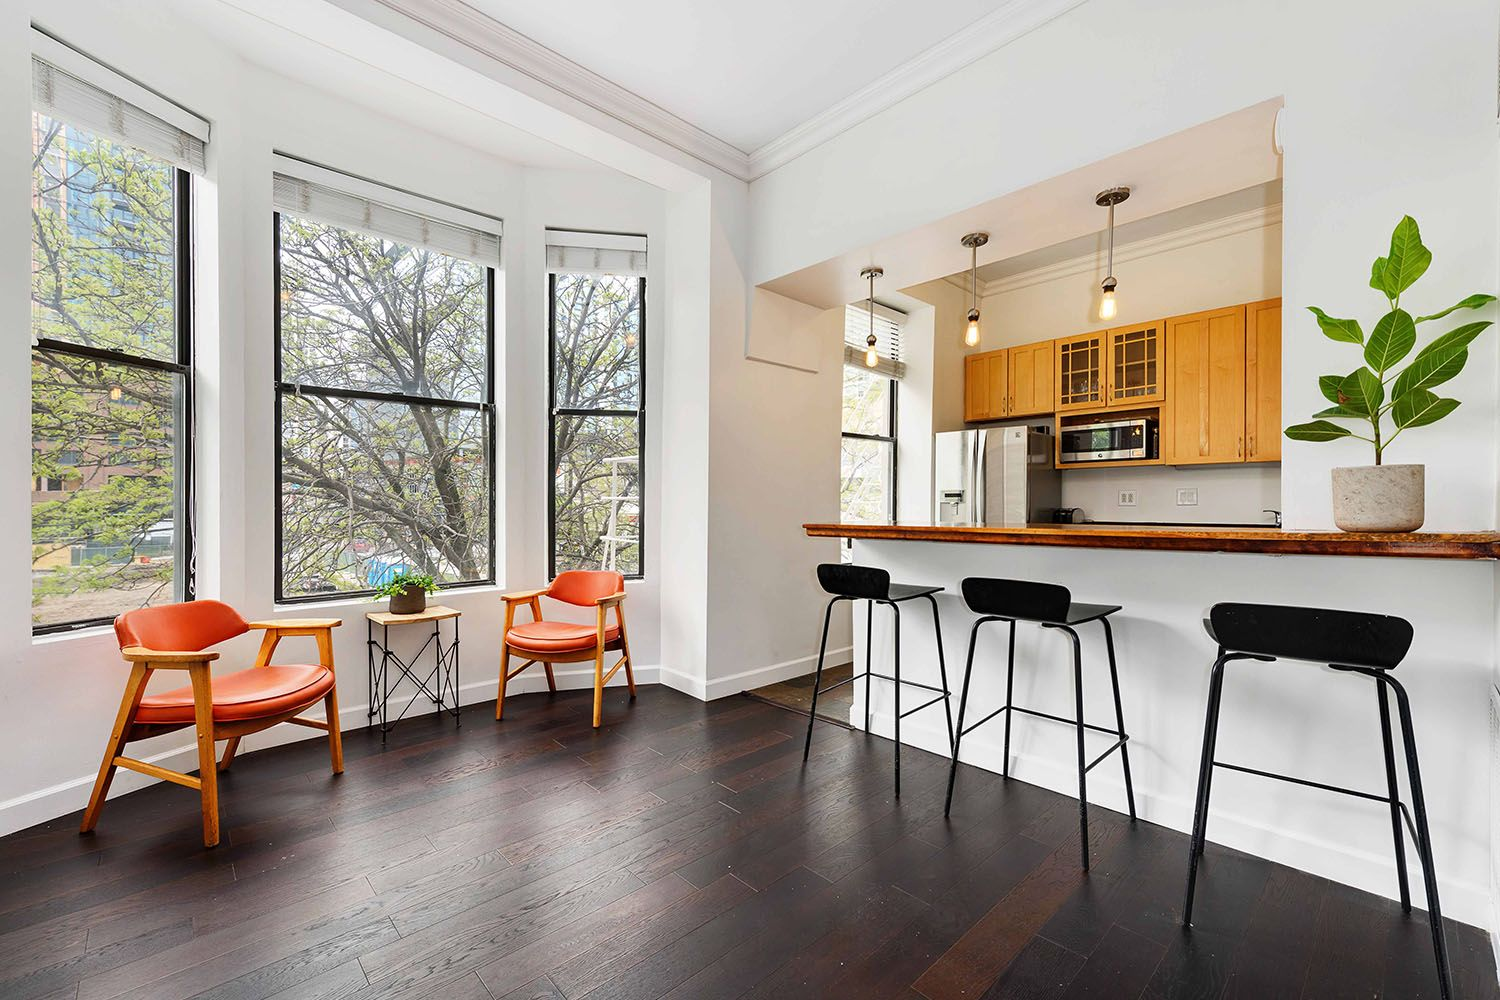 Mid century furniture gives this updated vintage 2 bedroom